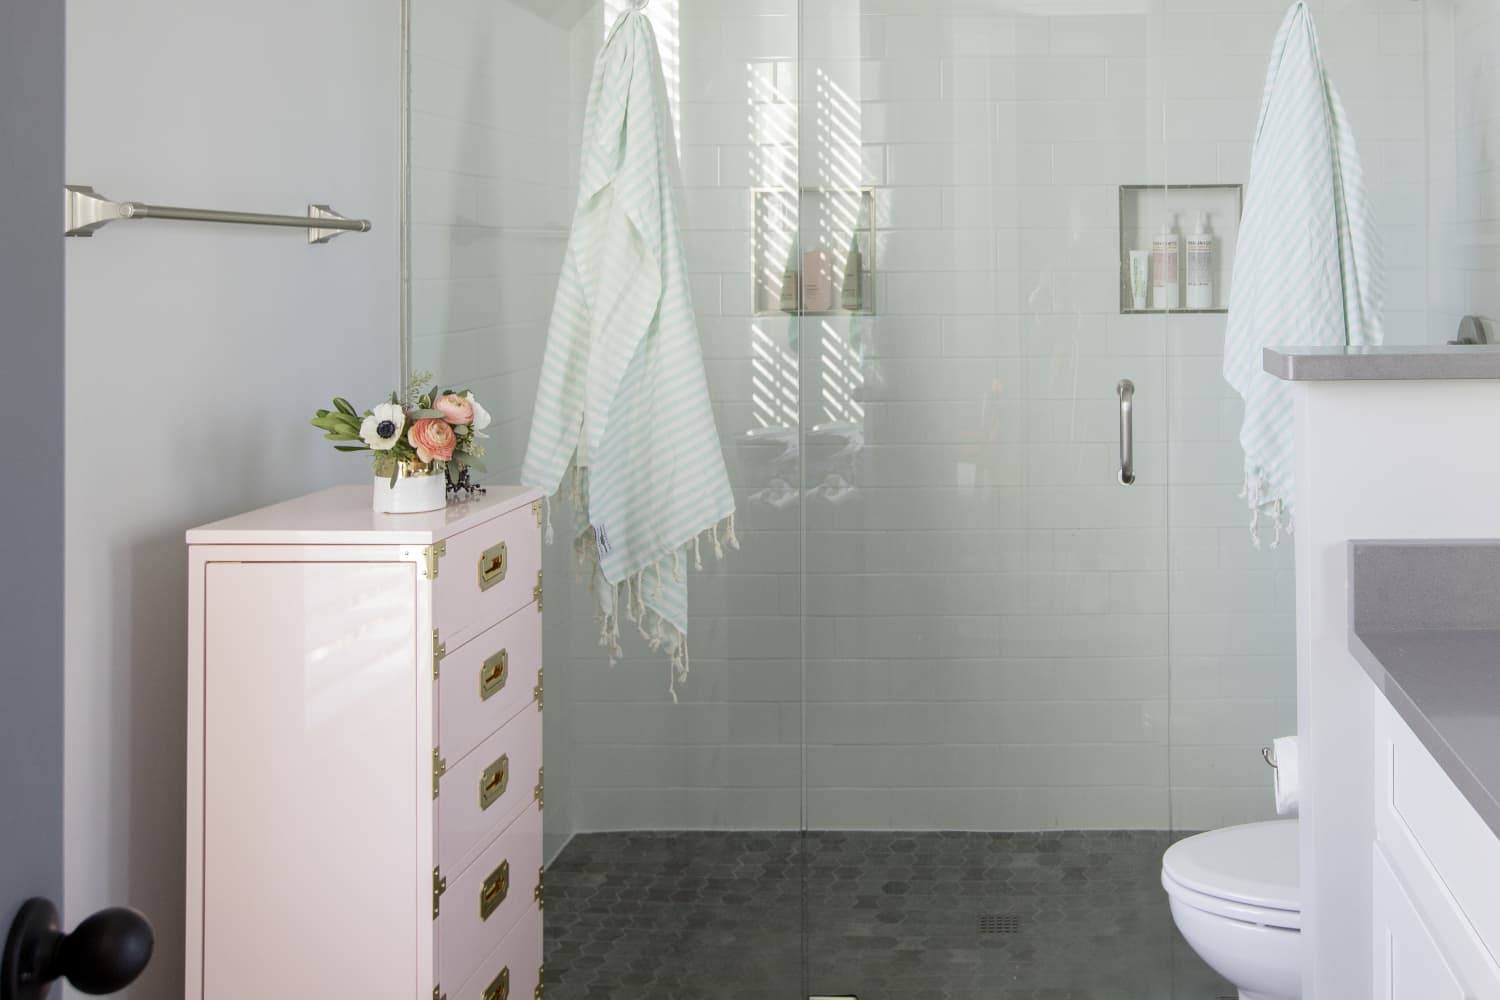 The $90 Upgrade That Made My Bathroom So Much Better